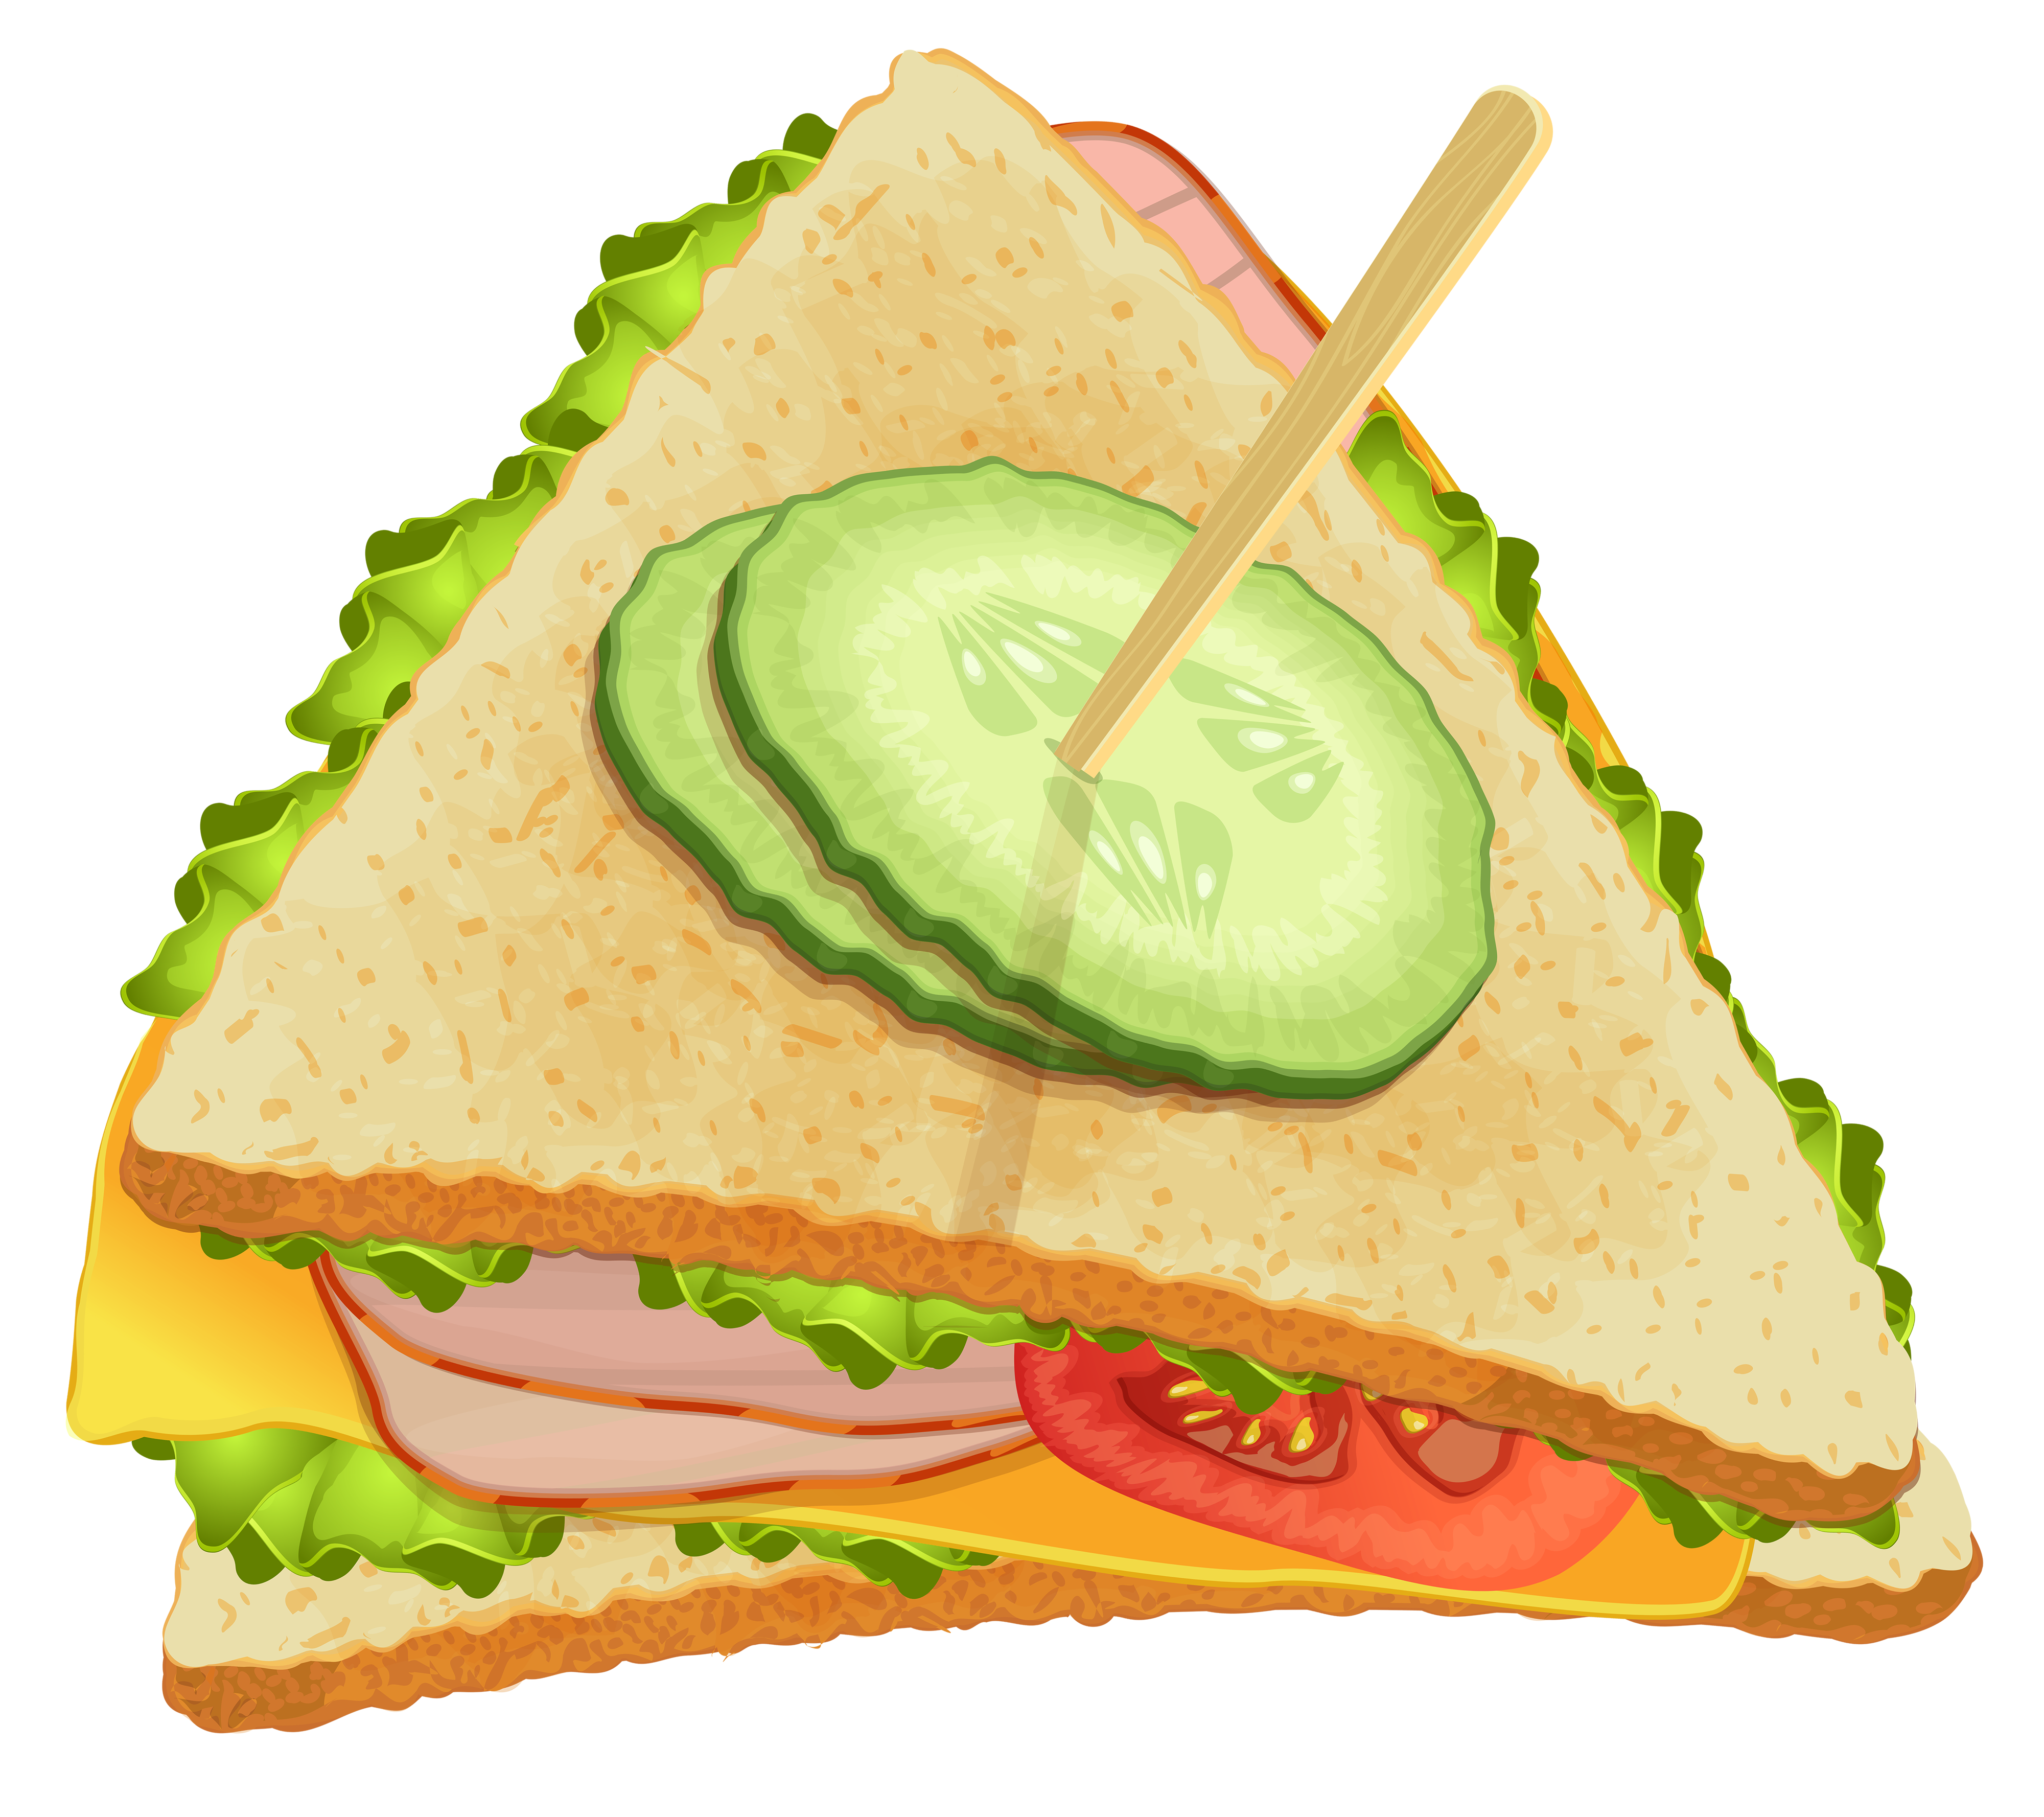 Triangle sandwich png best. Clipart umbrella triangular